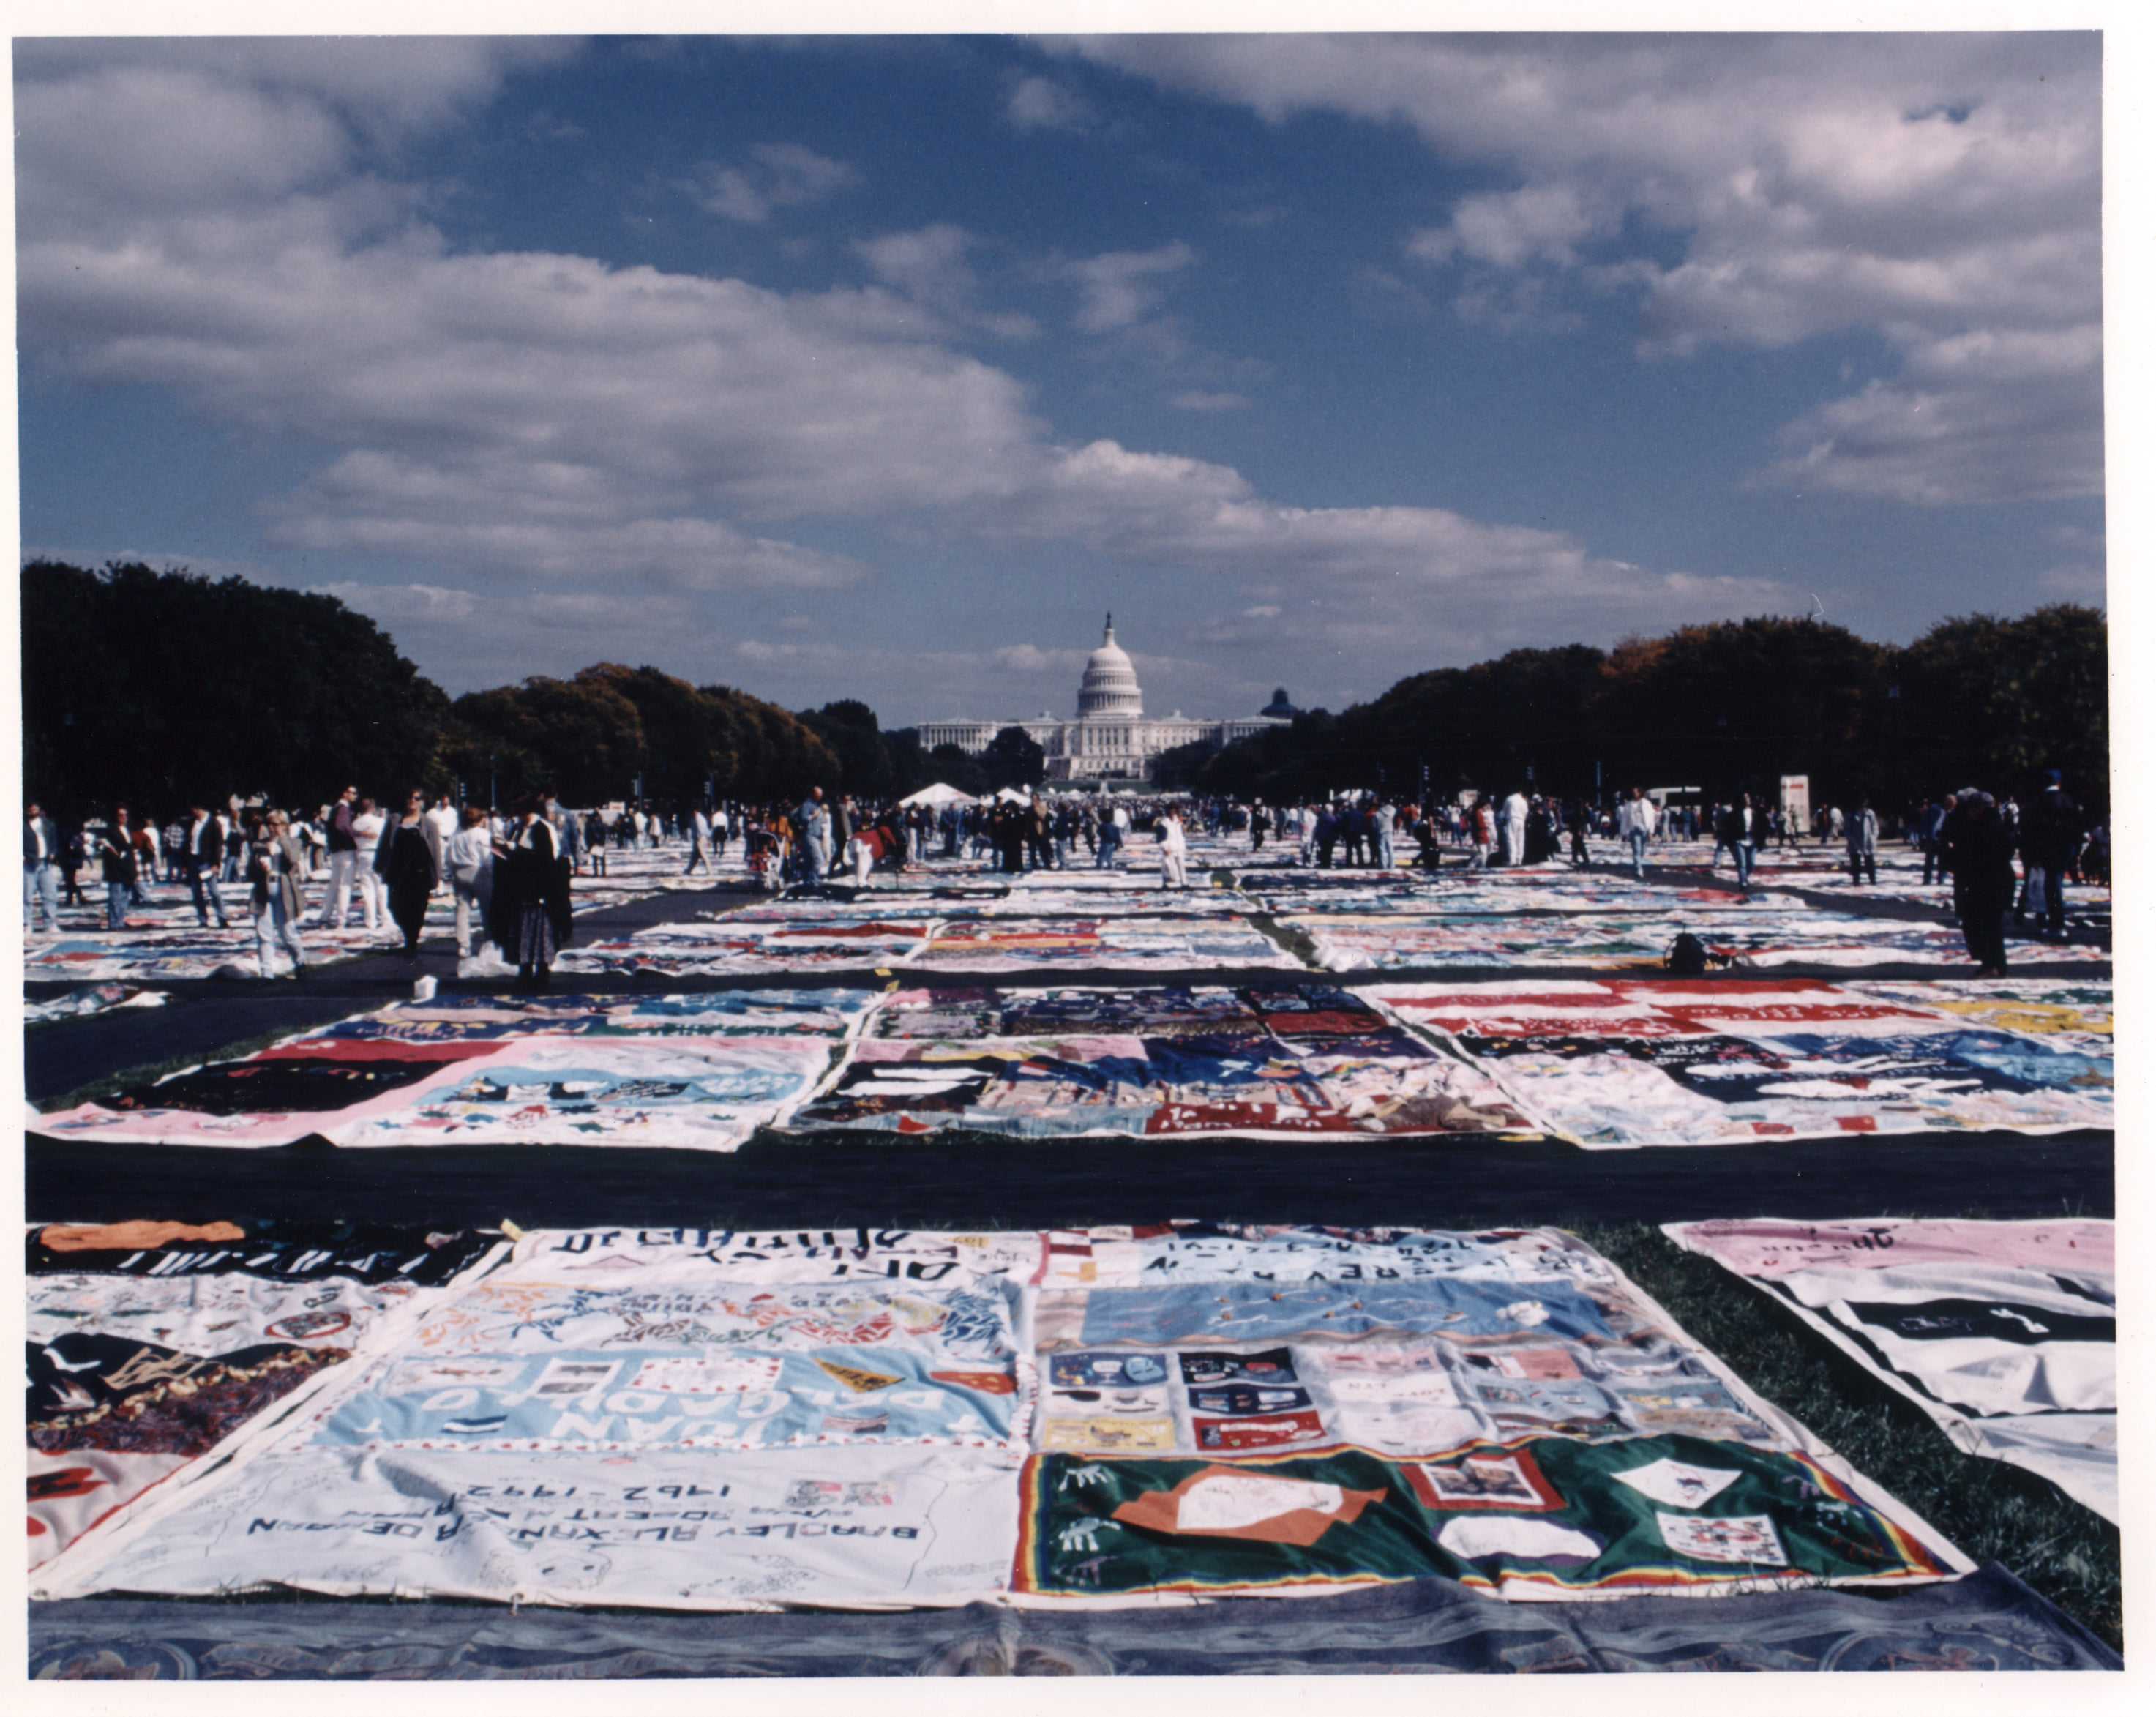 THE MOSAIC PROJECT OF SOUTH TEXAS & COASTAL BEND WELLNESS FOUNDATION TO HOST AN EXHIBITION OF THE NOBEL PRIZE NOMINATED AIDS MEMORIAL QUILT SUNDAY, DECEMBER 1—FRIDAY, DECEMBER 6